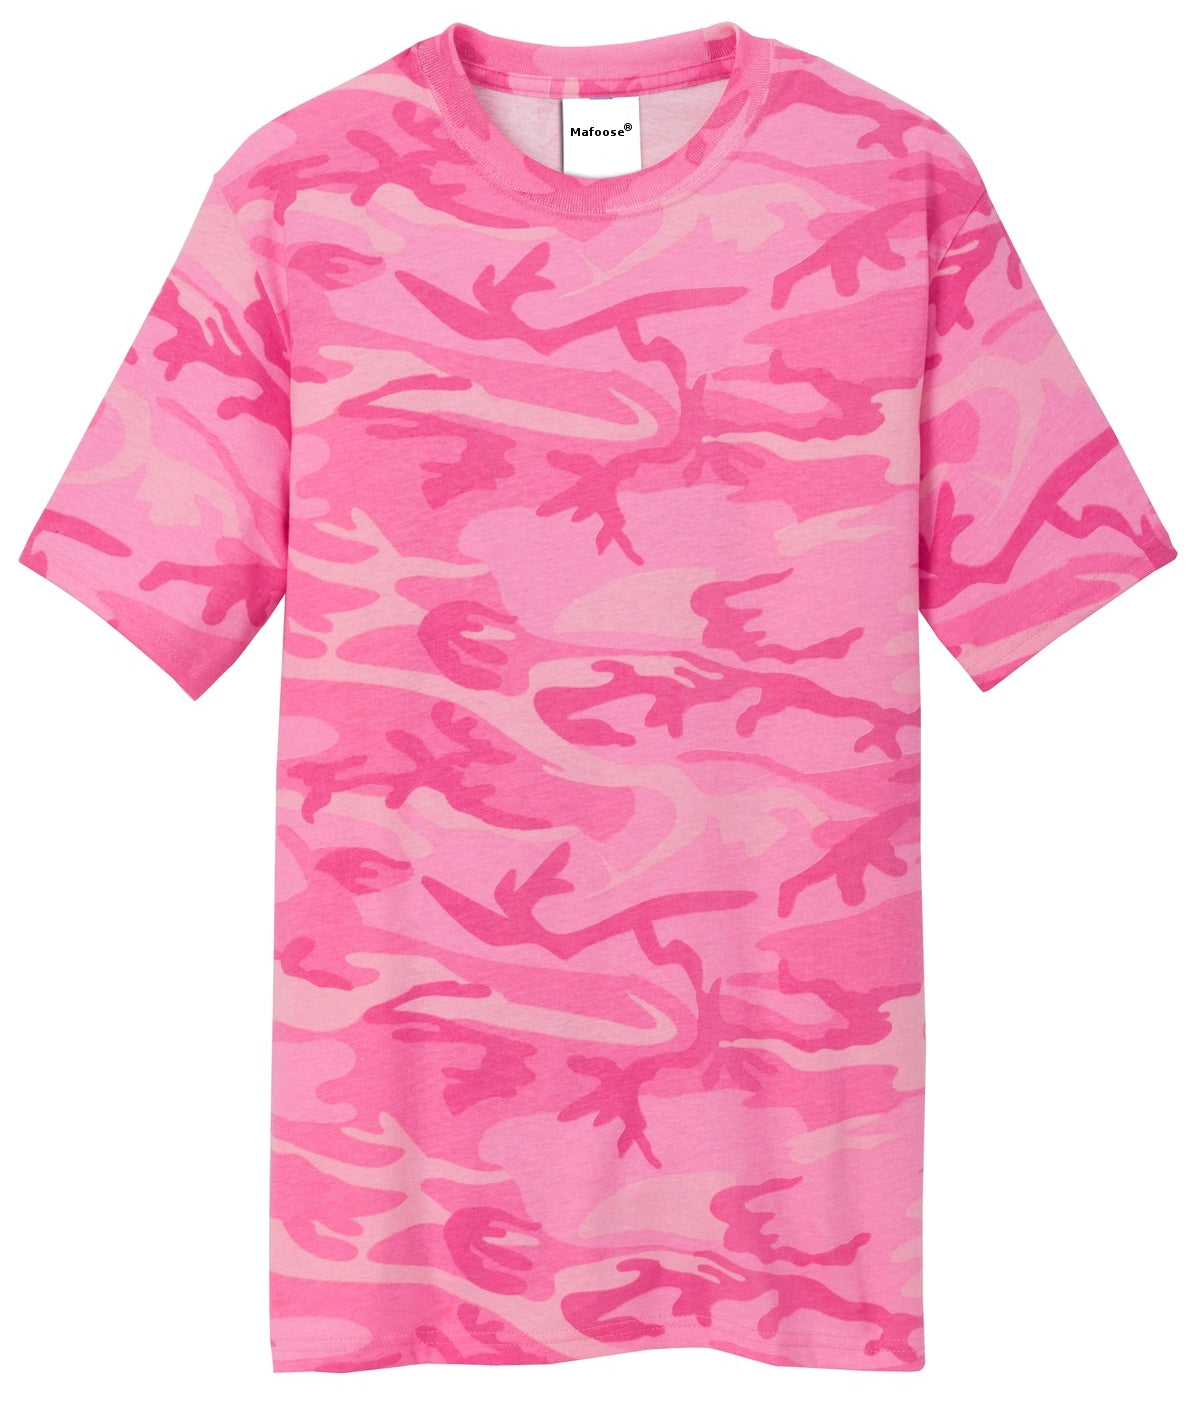 Mafoose Men's 5.4-oz 100% Cotton Tee Shirt Pink Camo-Front